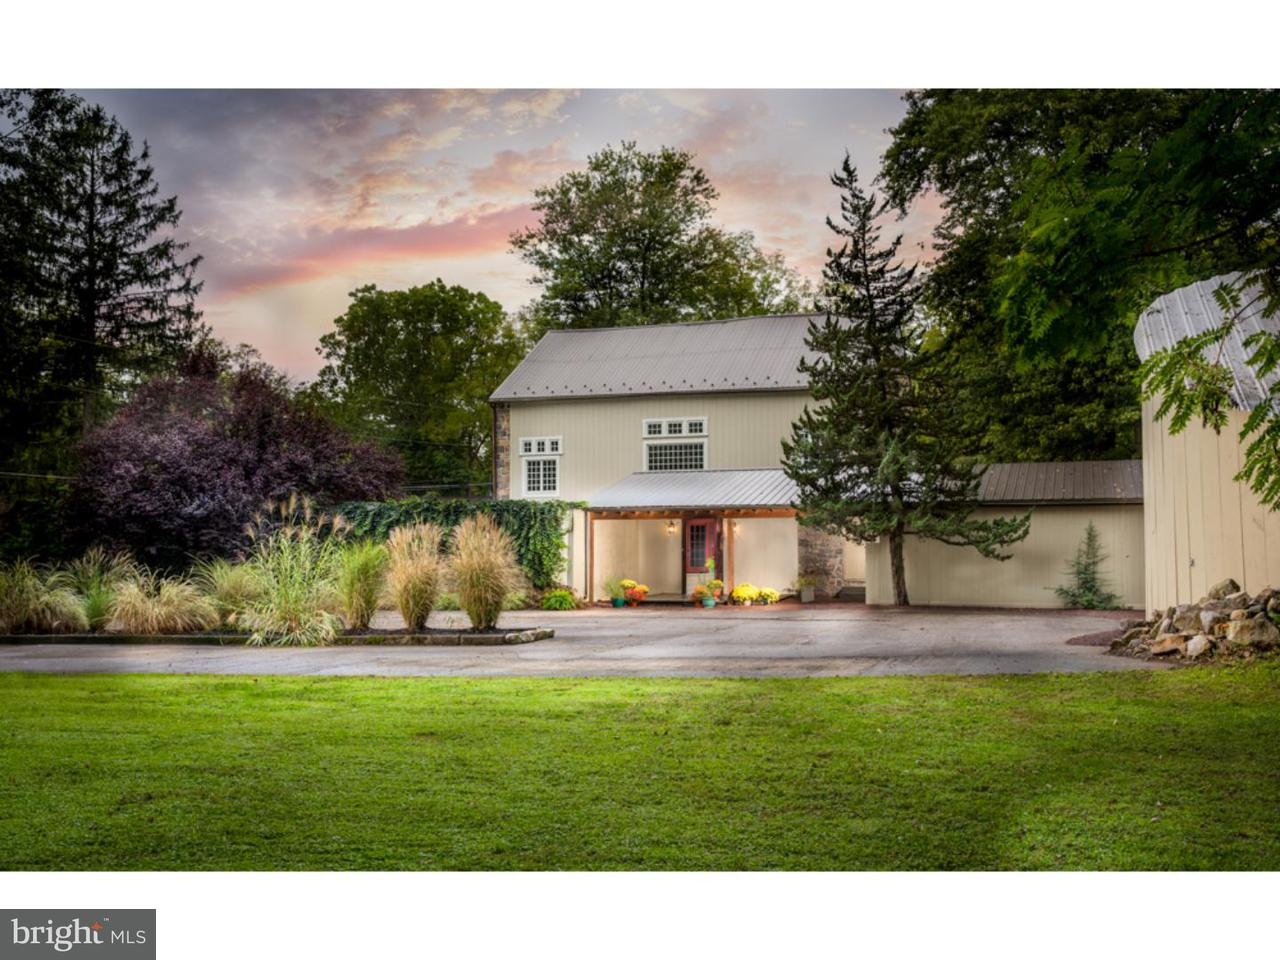 Single Family Home for Sale at 635 ROYAL MANOR Road Easton, Pennsylvania 18042 United States